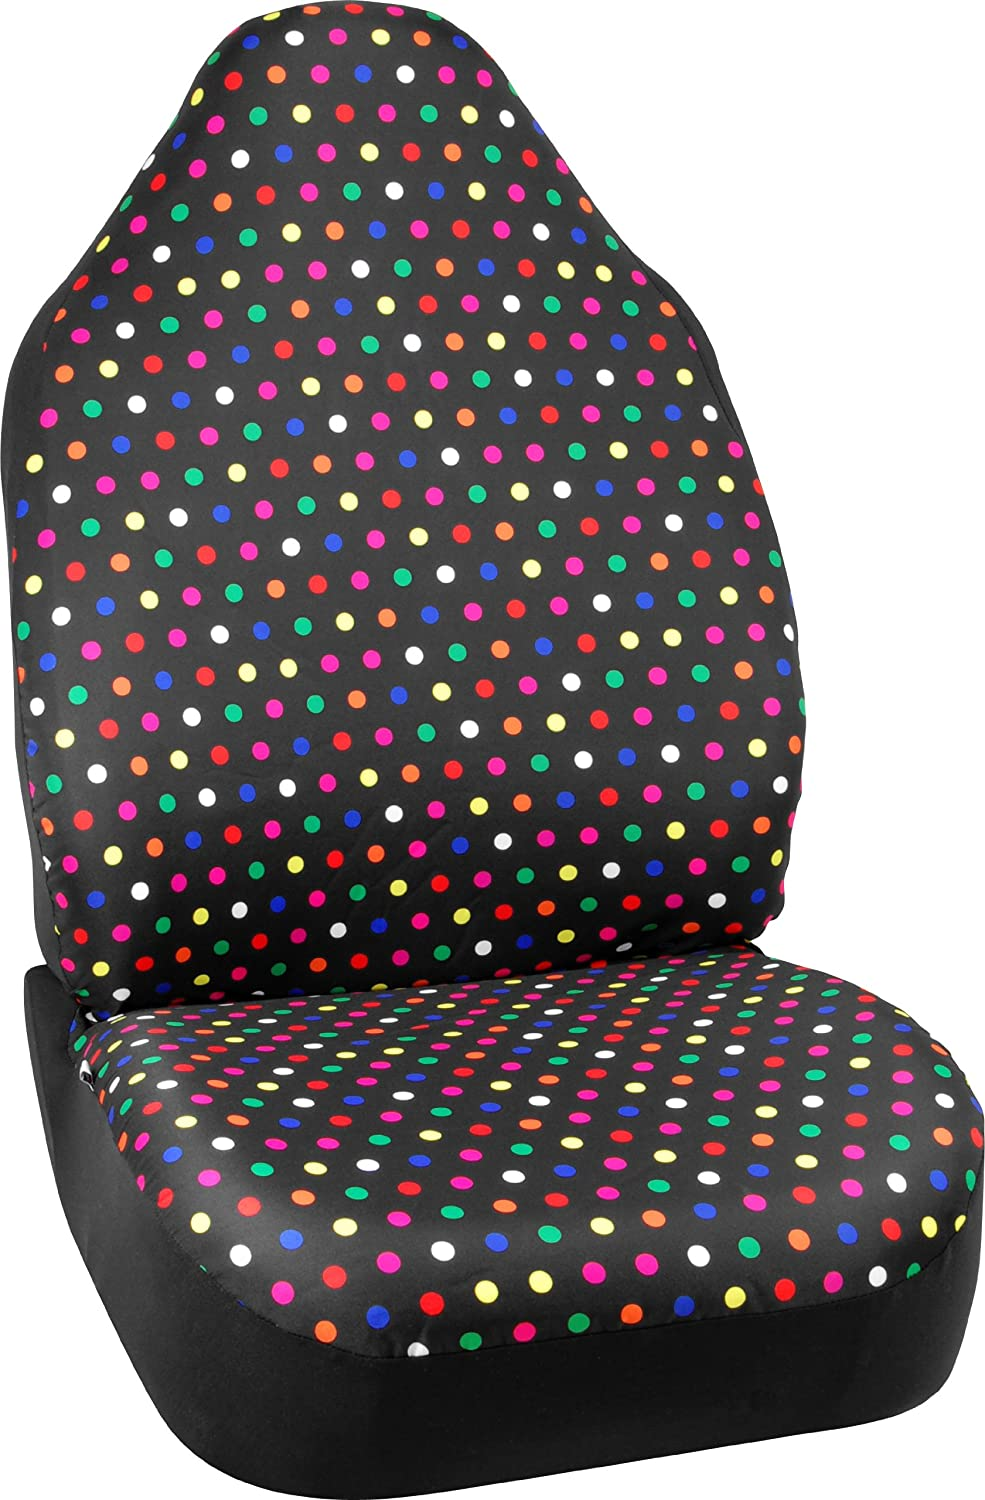 Bell Automotive 22-1-56810-8 Universal Pink Baja Blanket Seat Cover